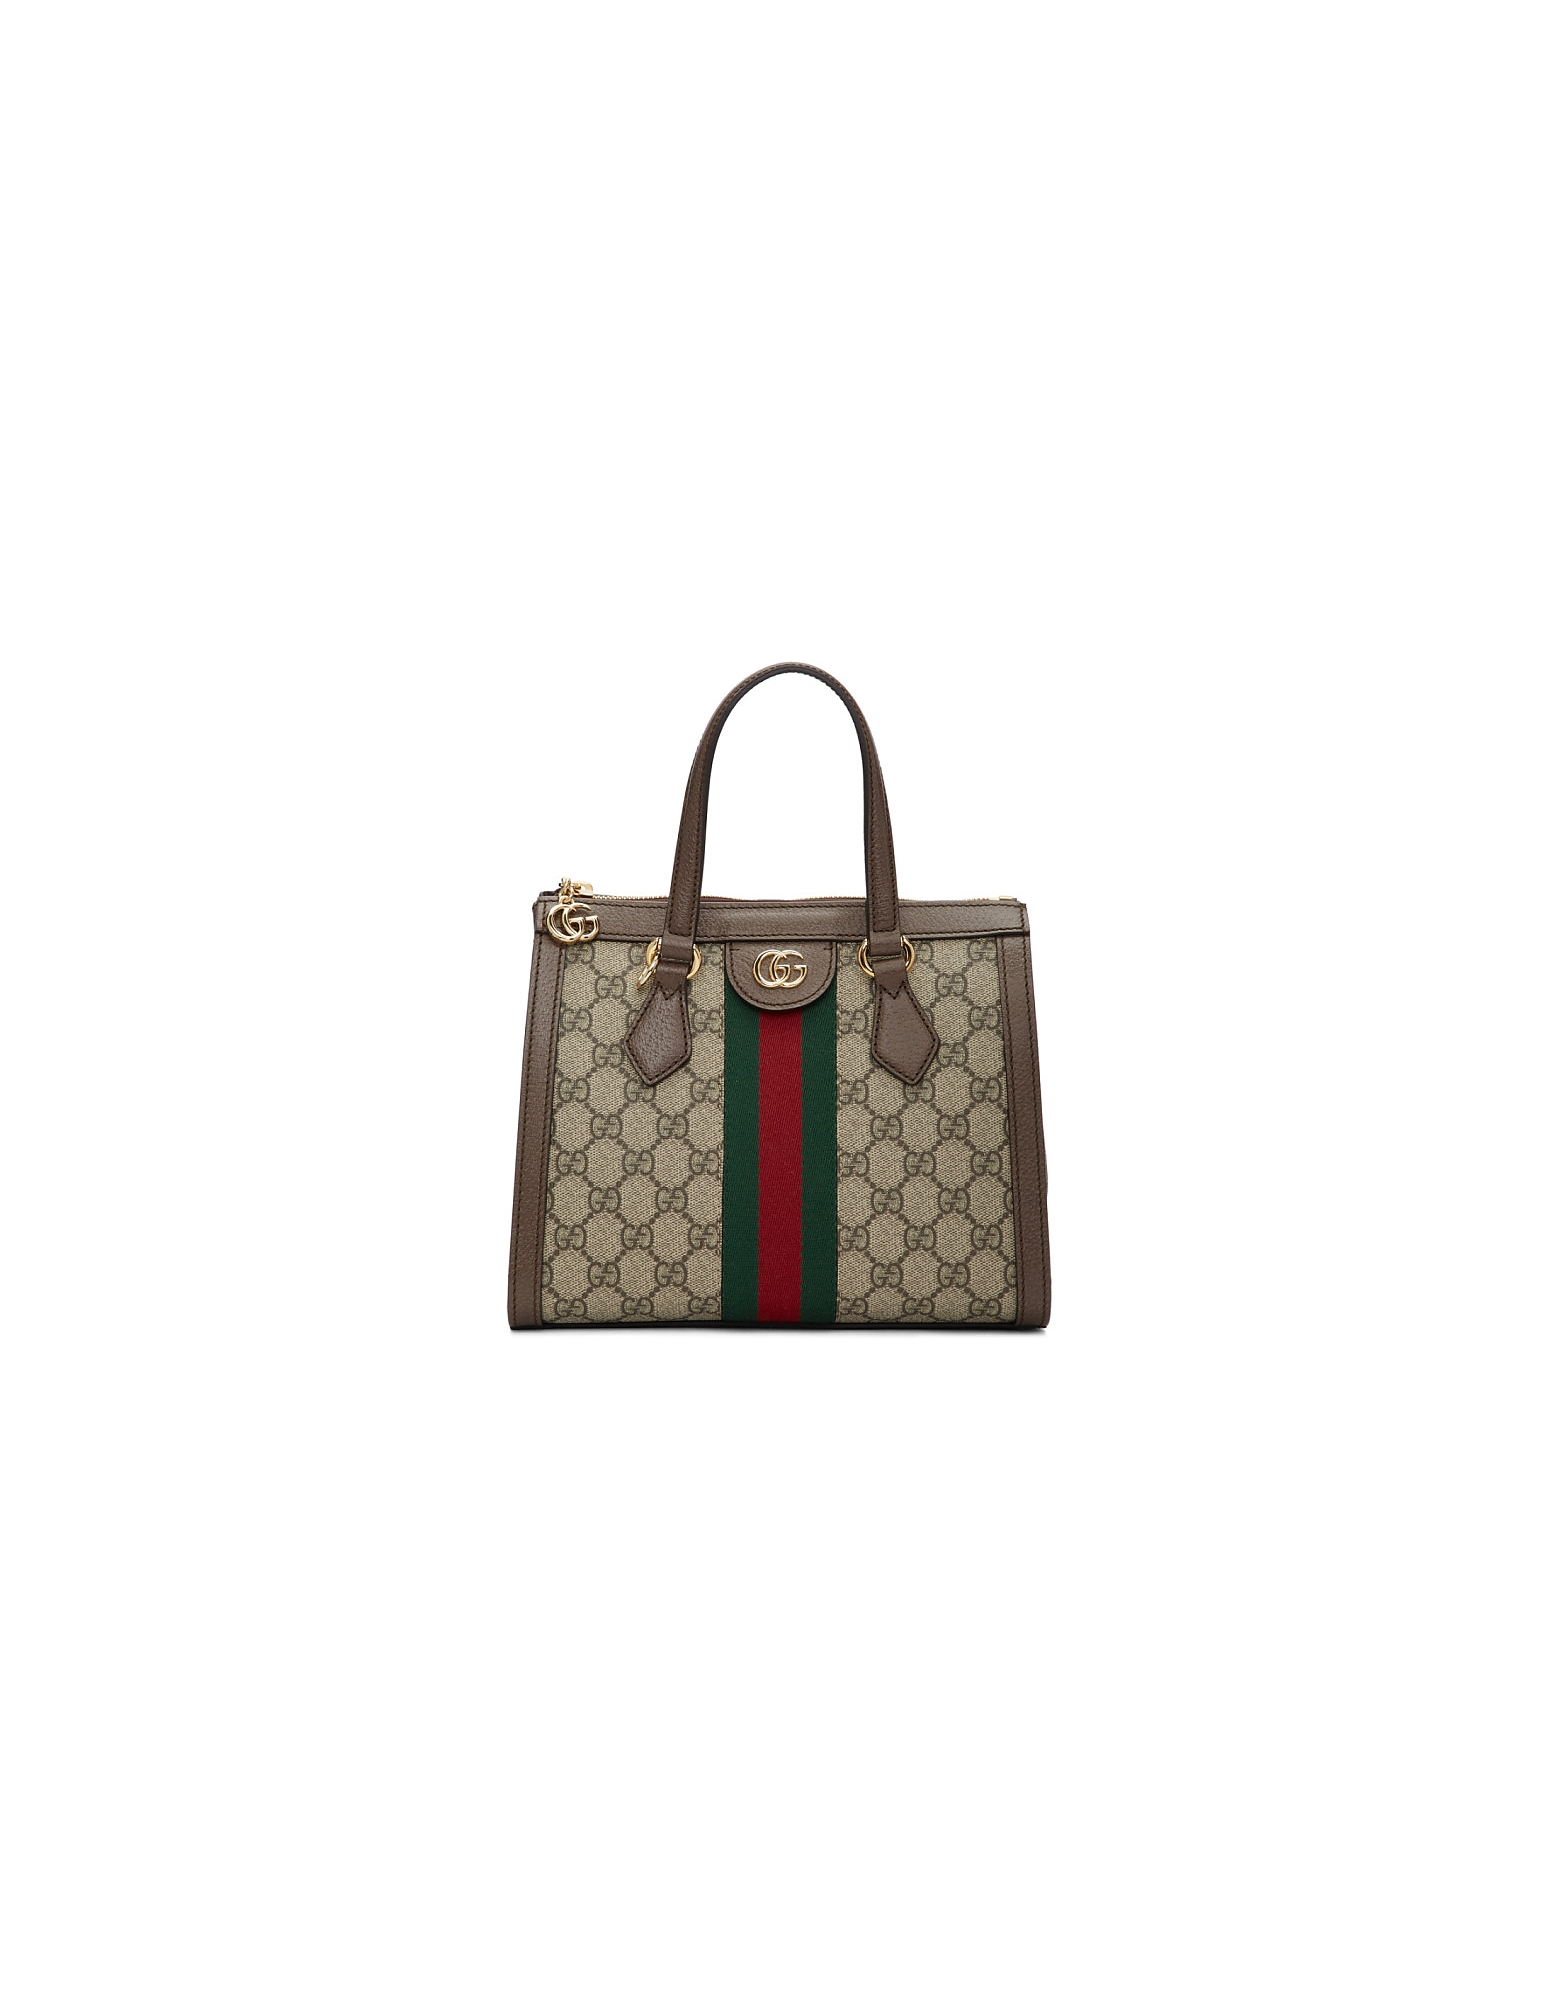 Gucci Designer Handbags, Beige Small GG Ophidia Bag